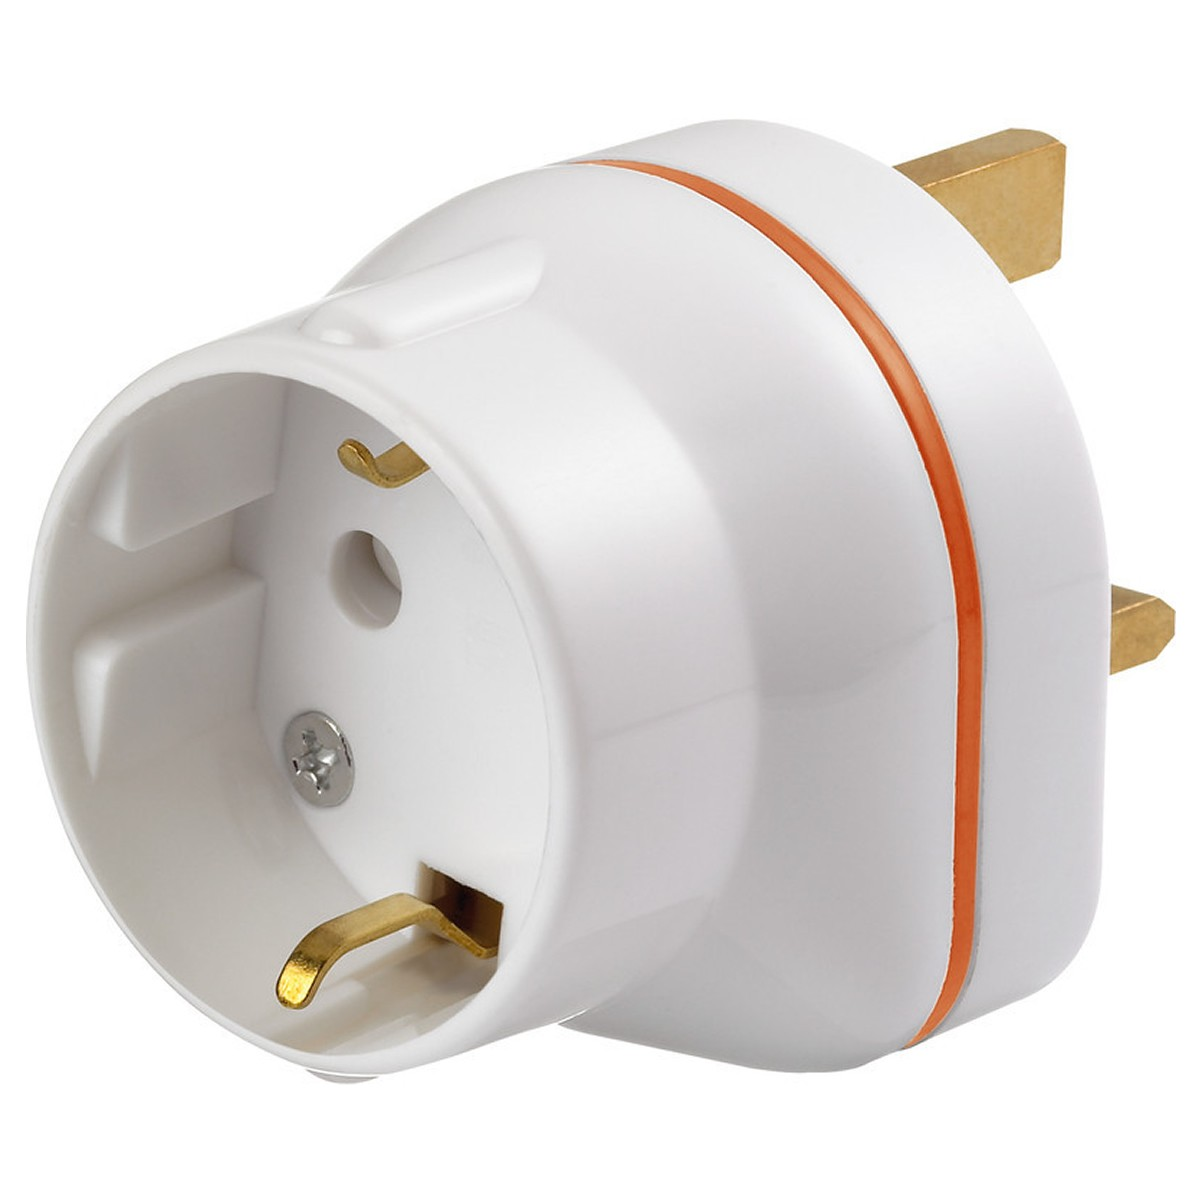 Go Travel Euro - UK Adaptor